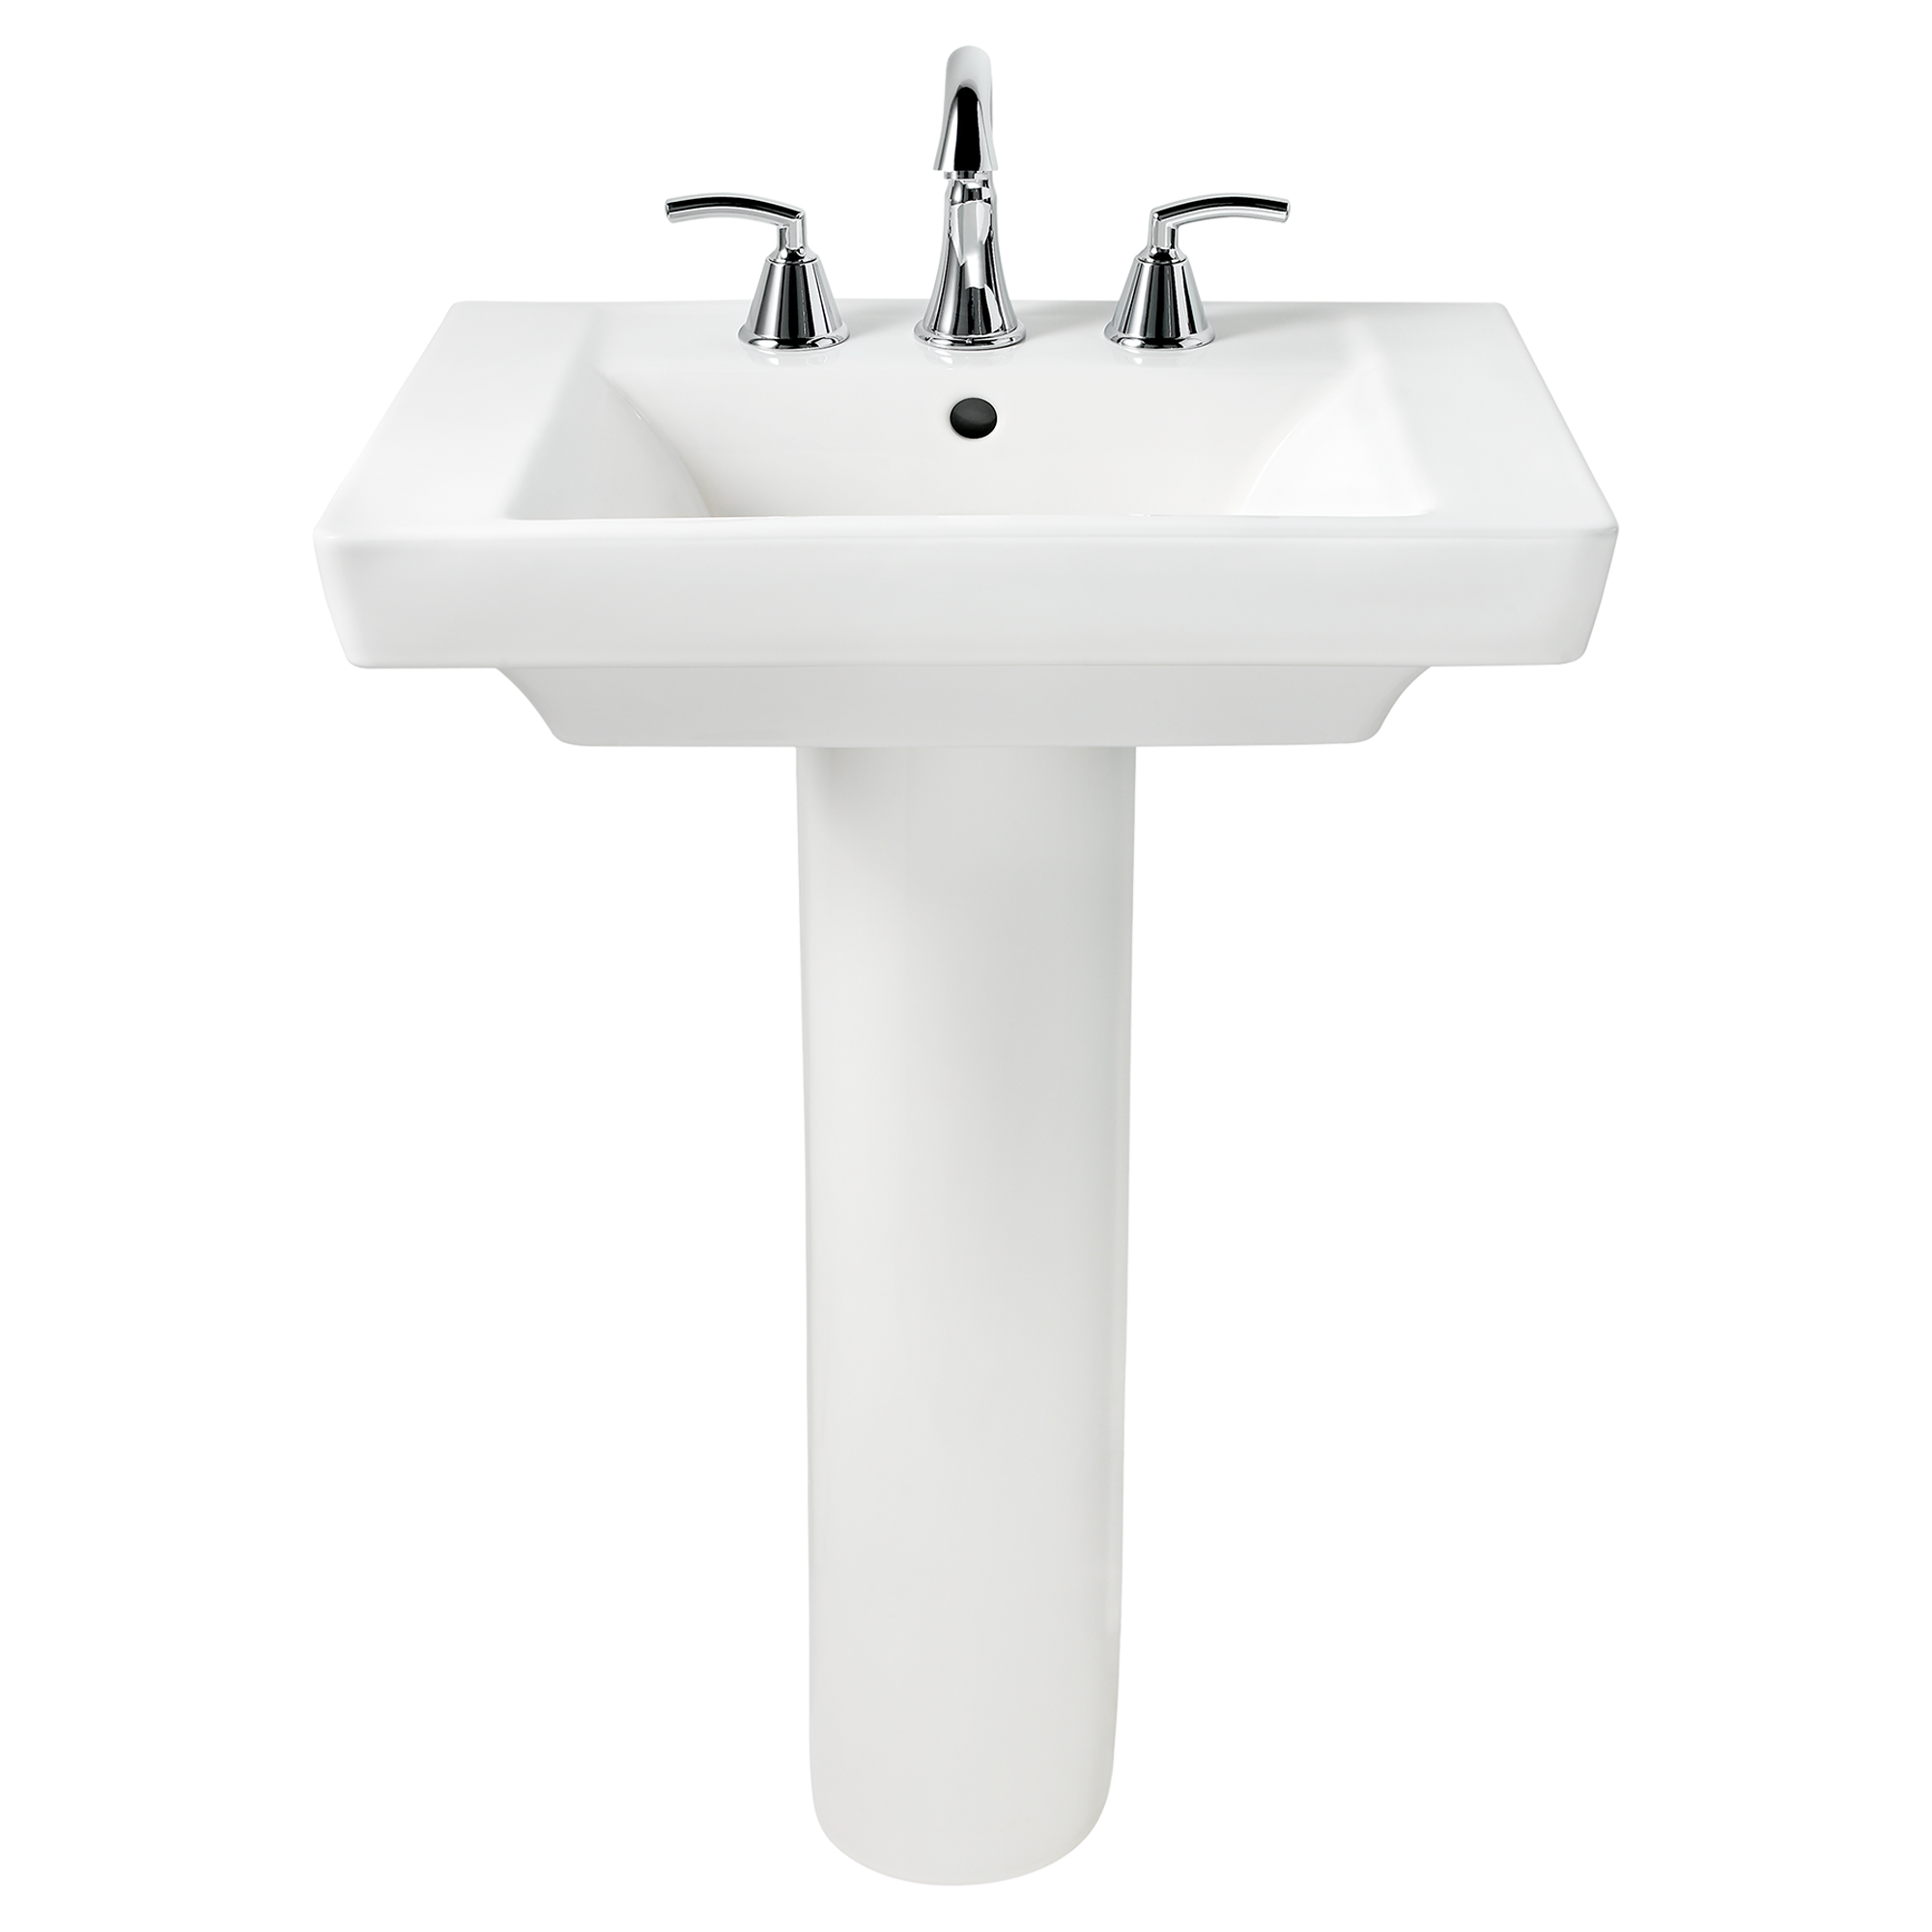 The Boulevard 24 Pedestal Sink Is Designed To Accommodate Single